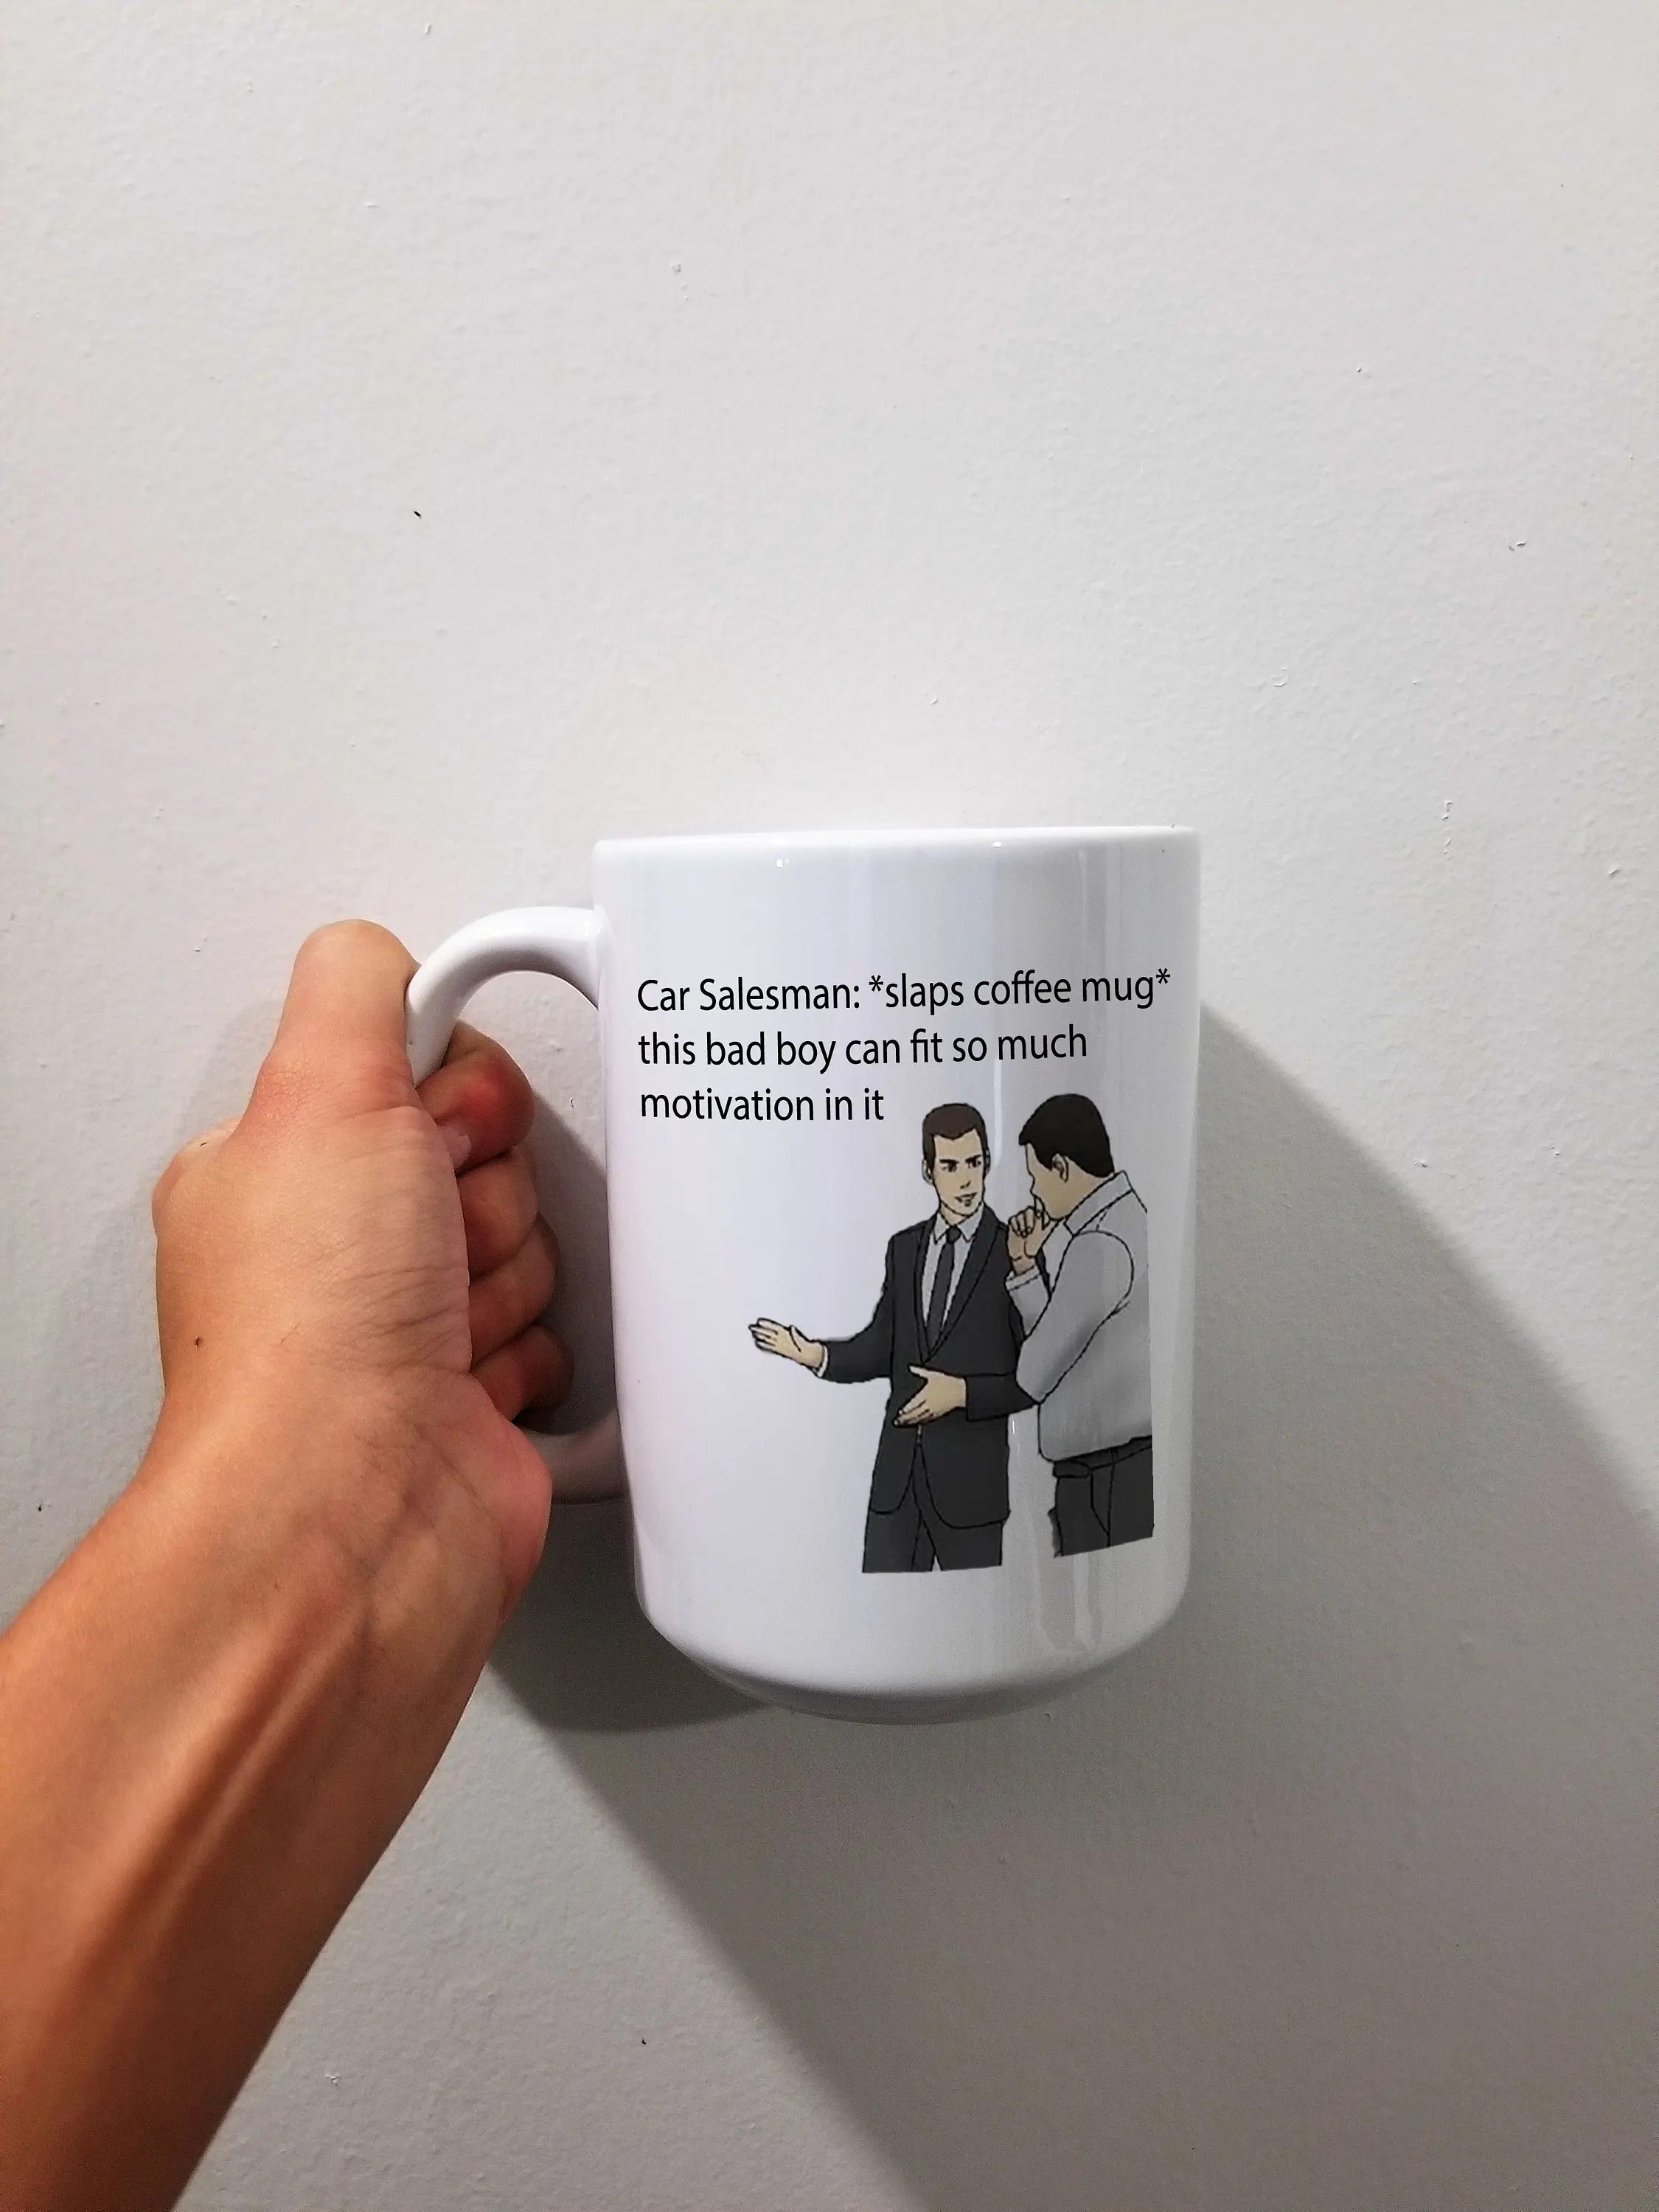 Car Salesman Meme Mug Funny Coffee Mug Meme Lover Gift Pop | Etsy #coffeeLovers